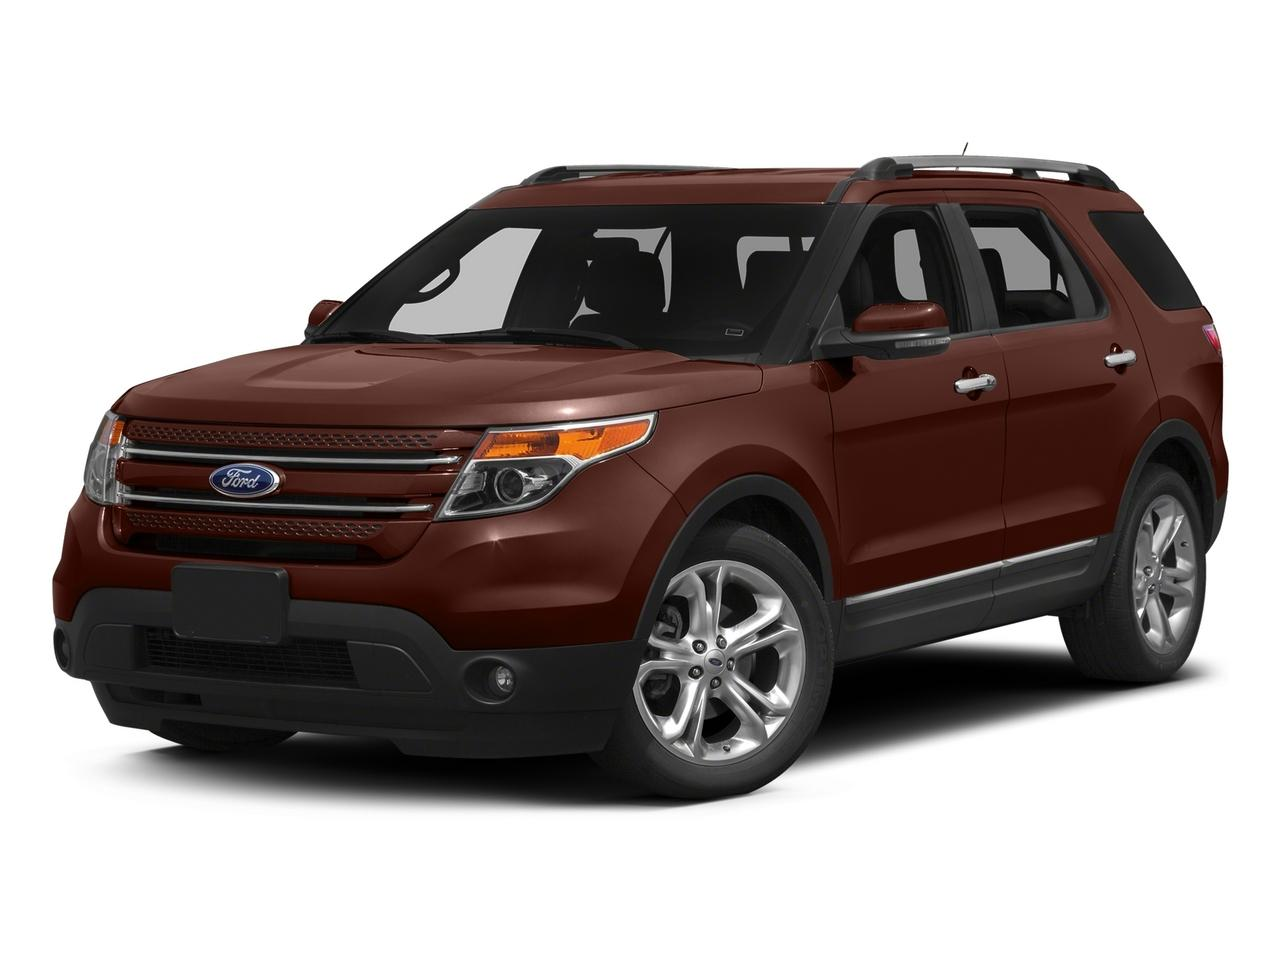 2015 Ford Explorer Vehicle Photo in Odessa, TX 79762